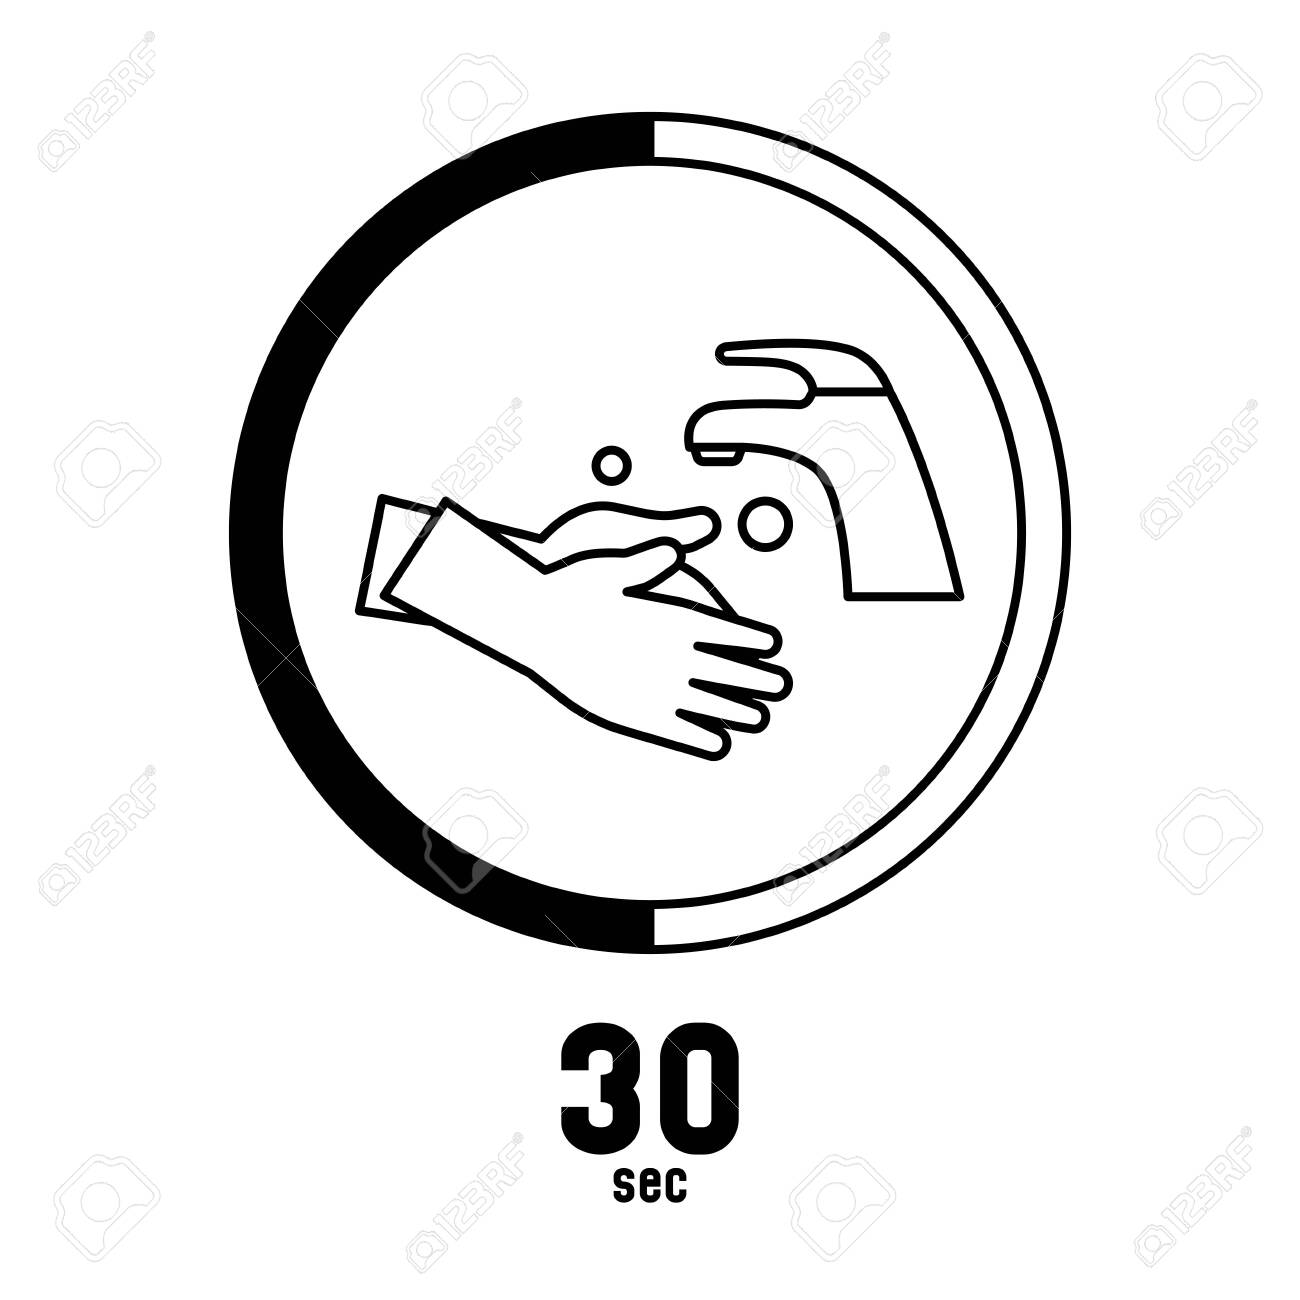 Washing hands 30 seconds keep healthy and prevent virus sign logo symbol - 151918626